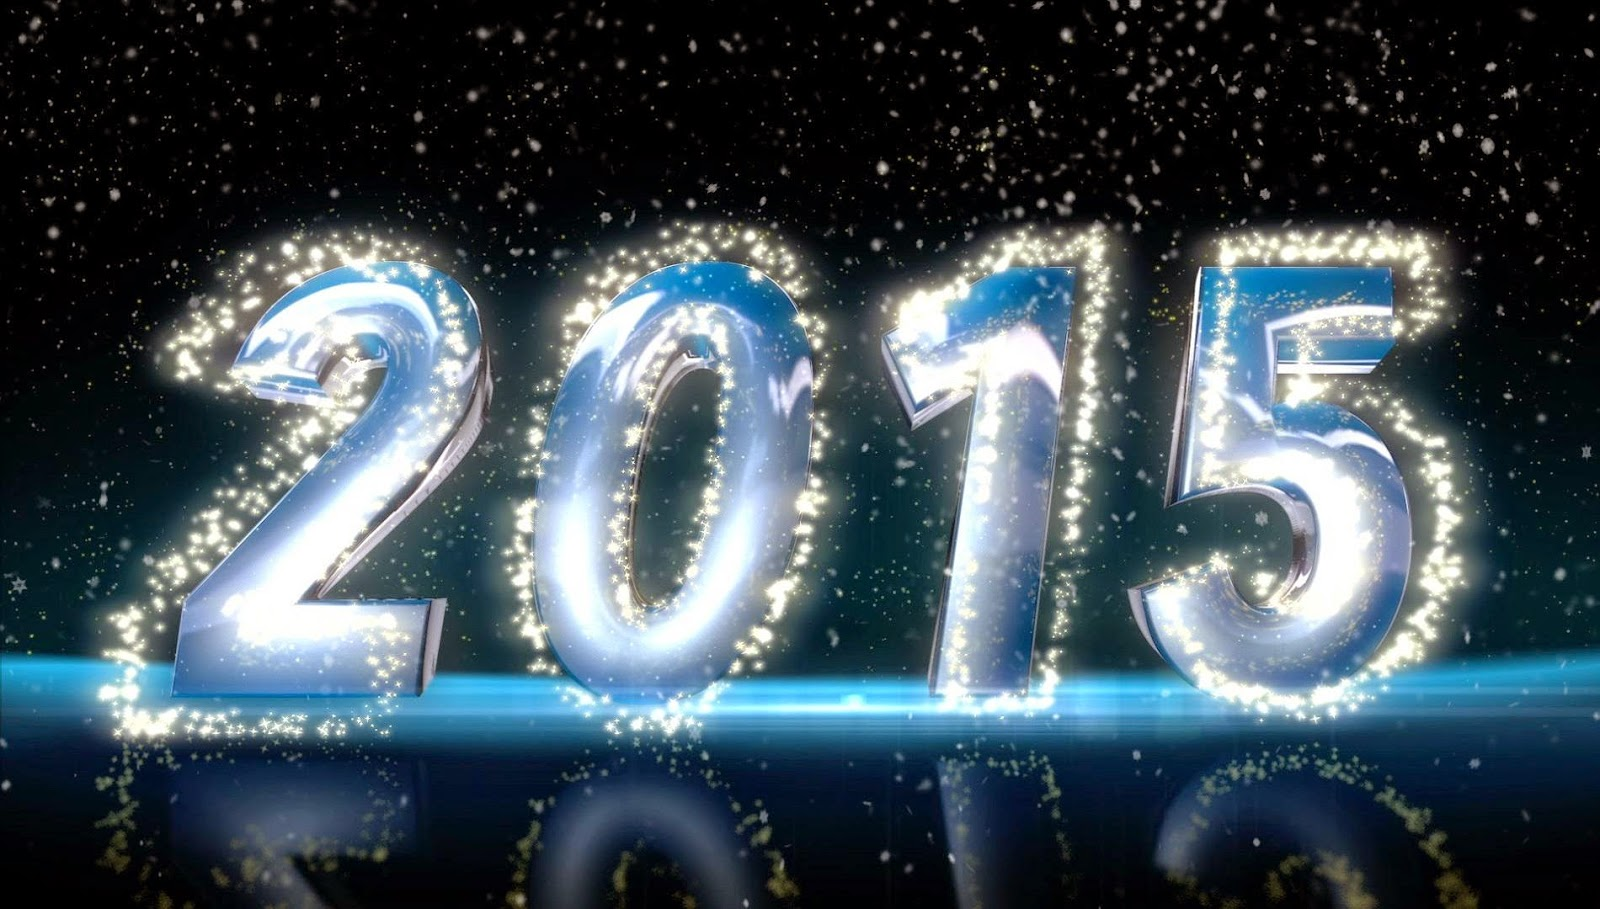 HD New Year 2015 Background Wallpapers